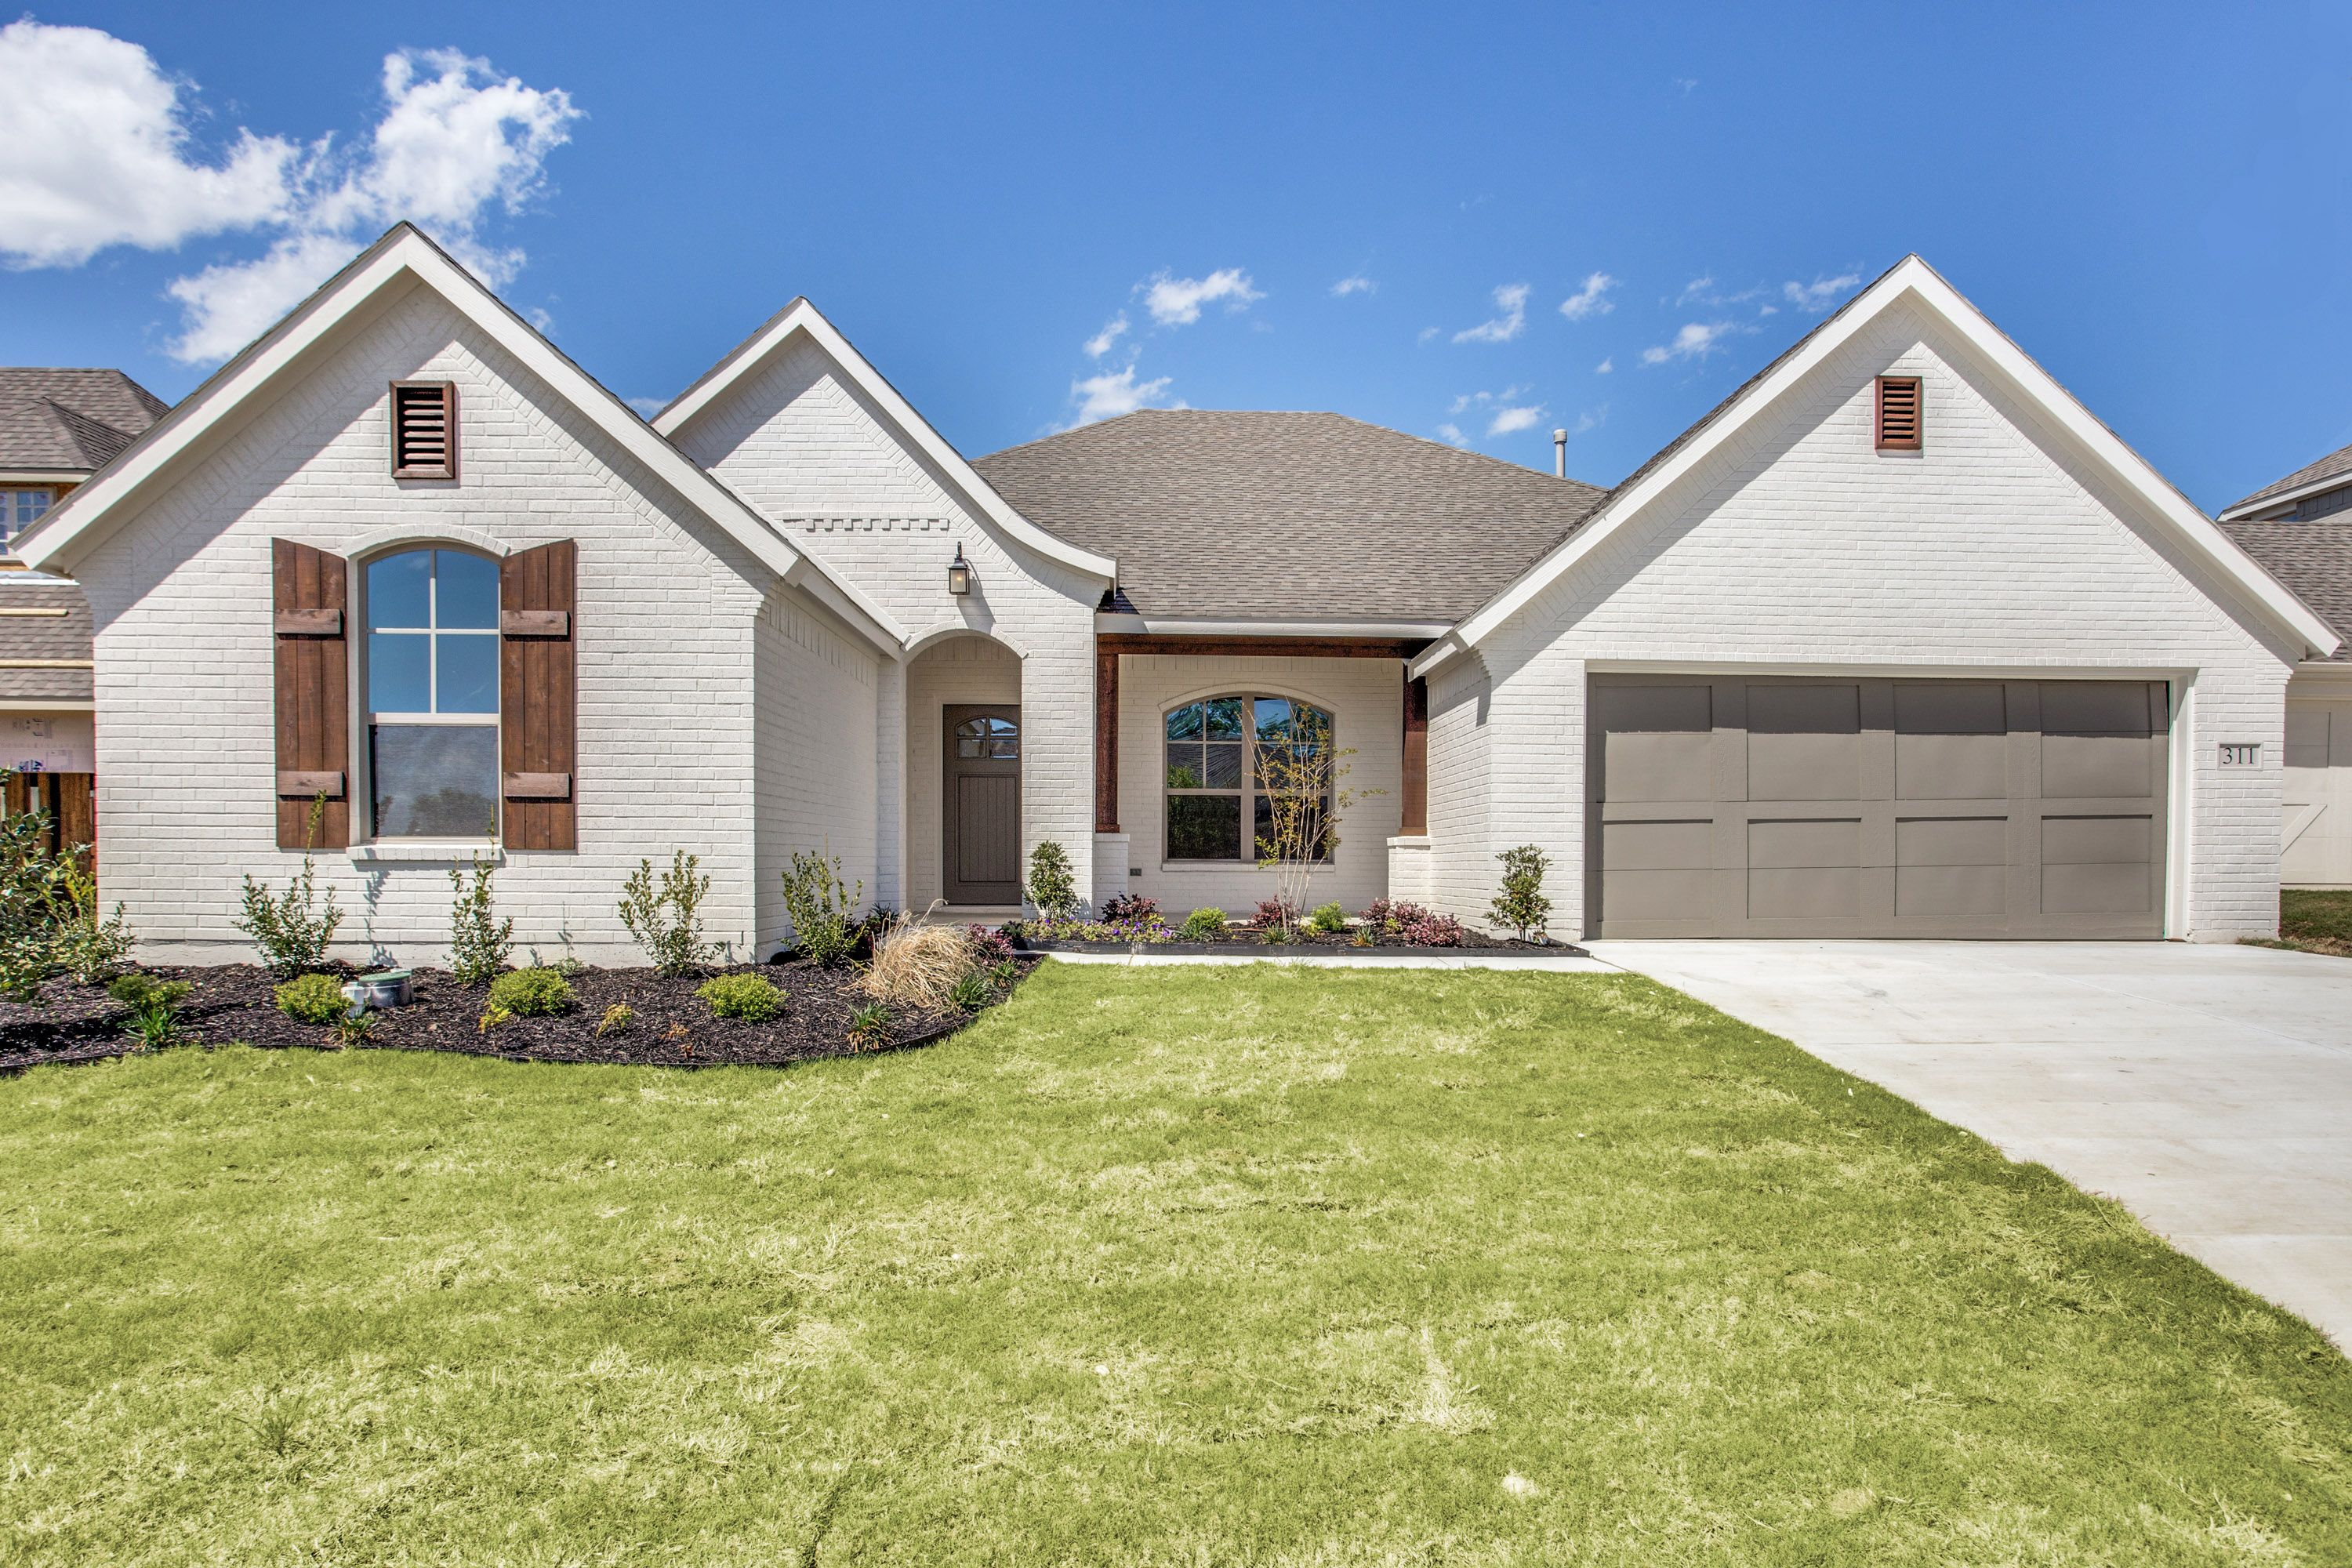 Clarity Homes Fort Worth White Painted Brick Home Gray Accents Stained Shutters Better